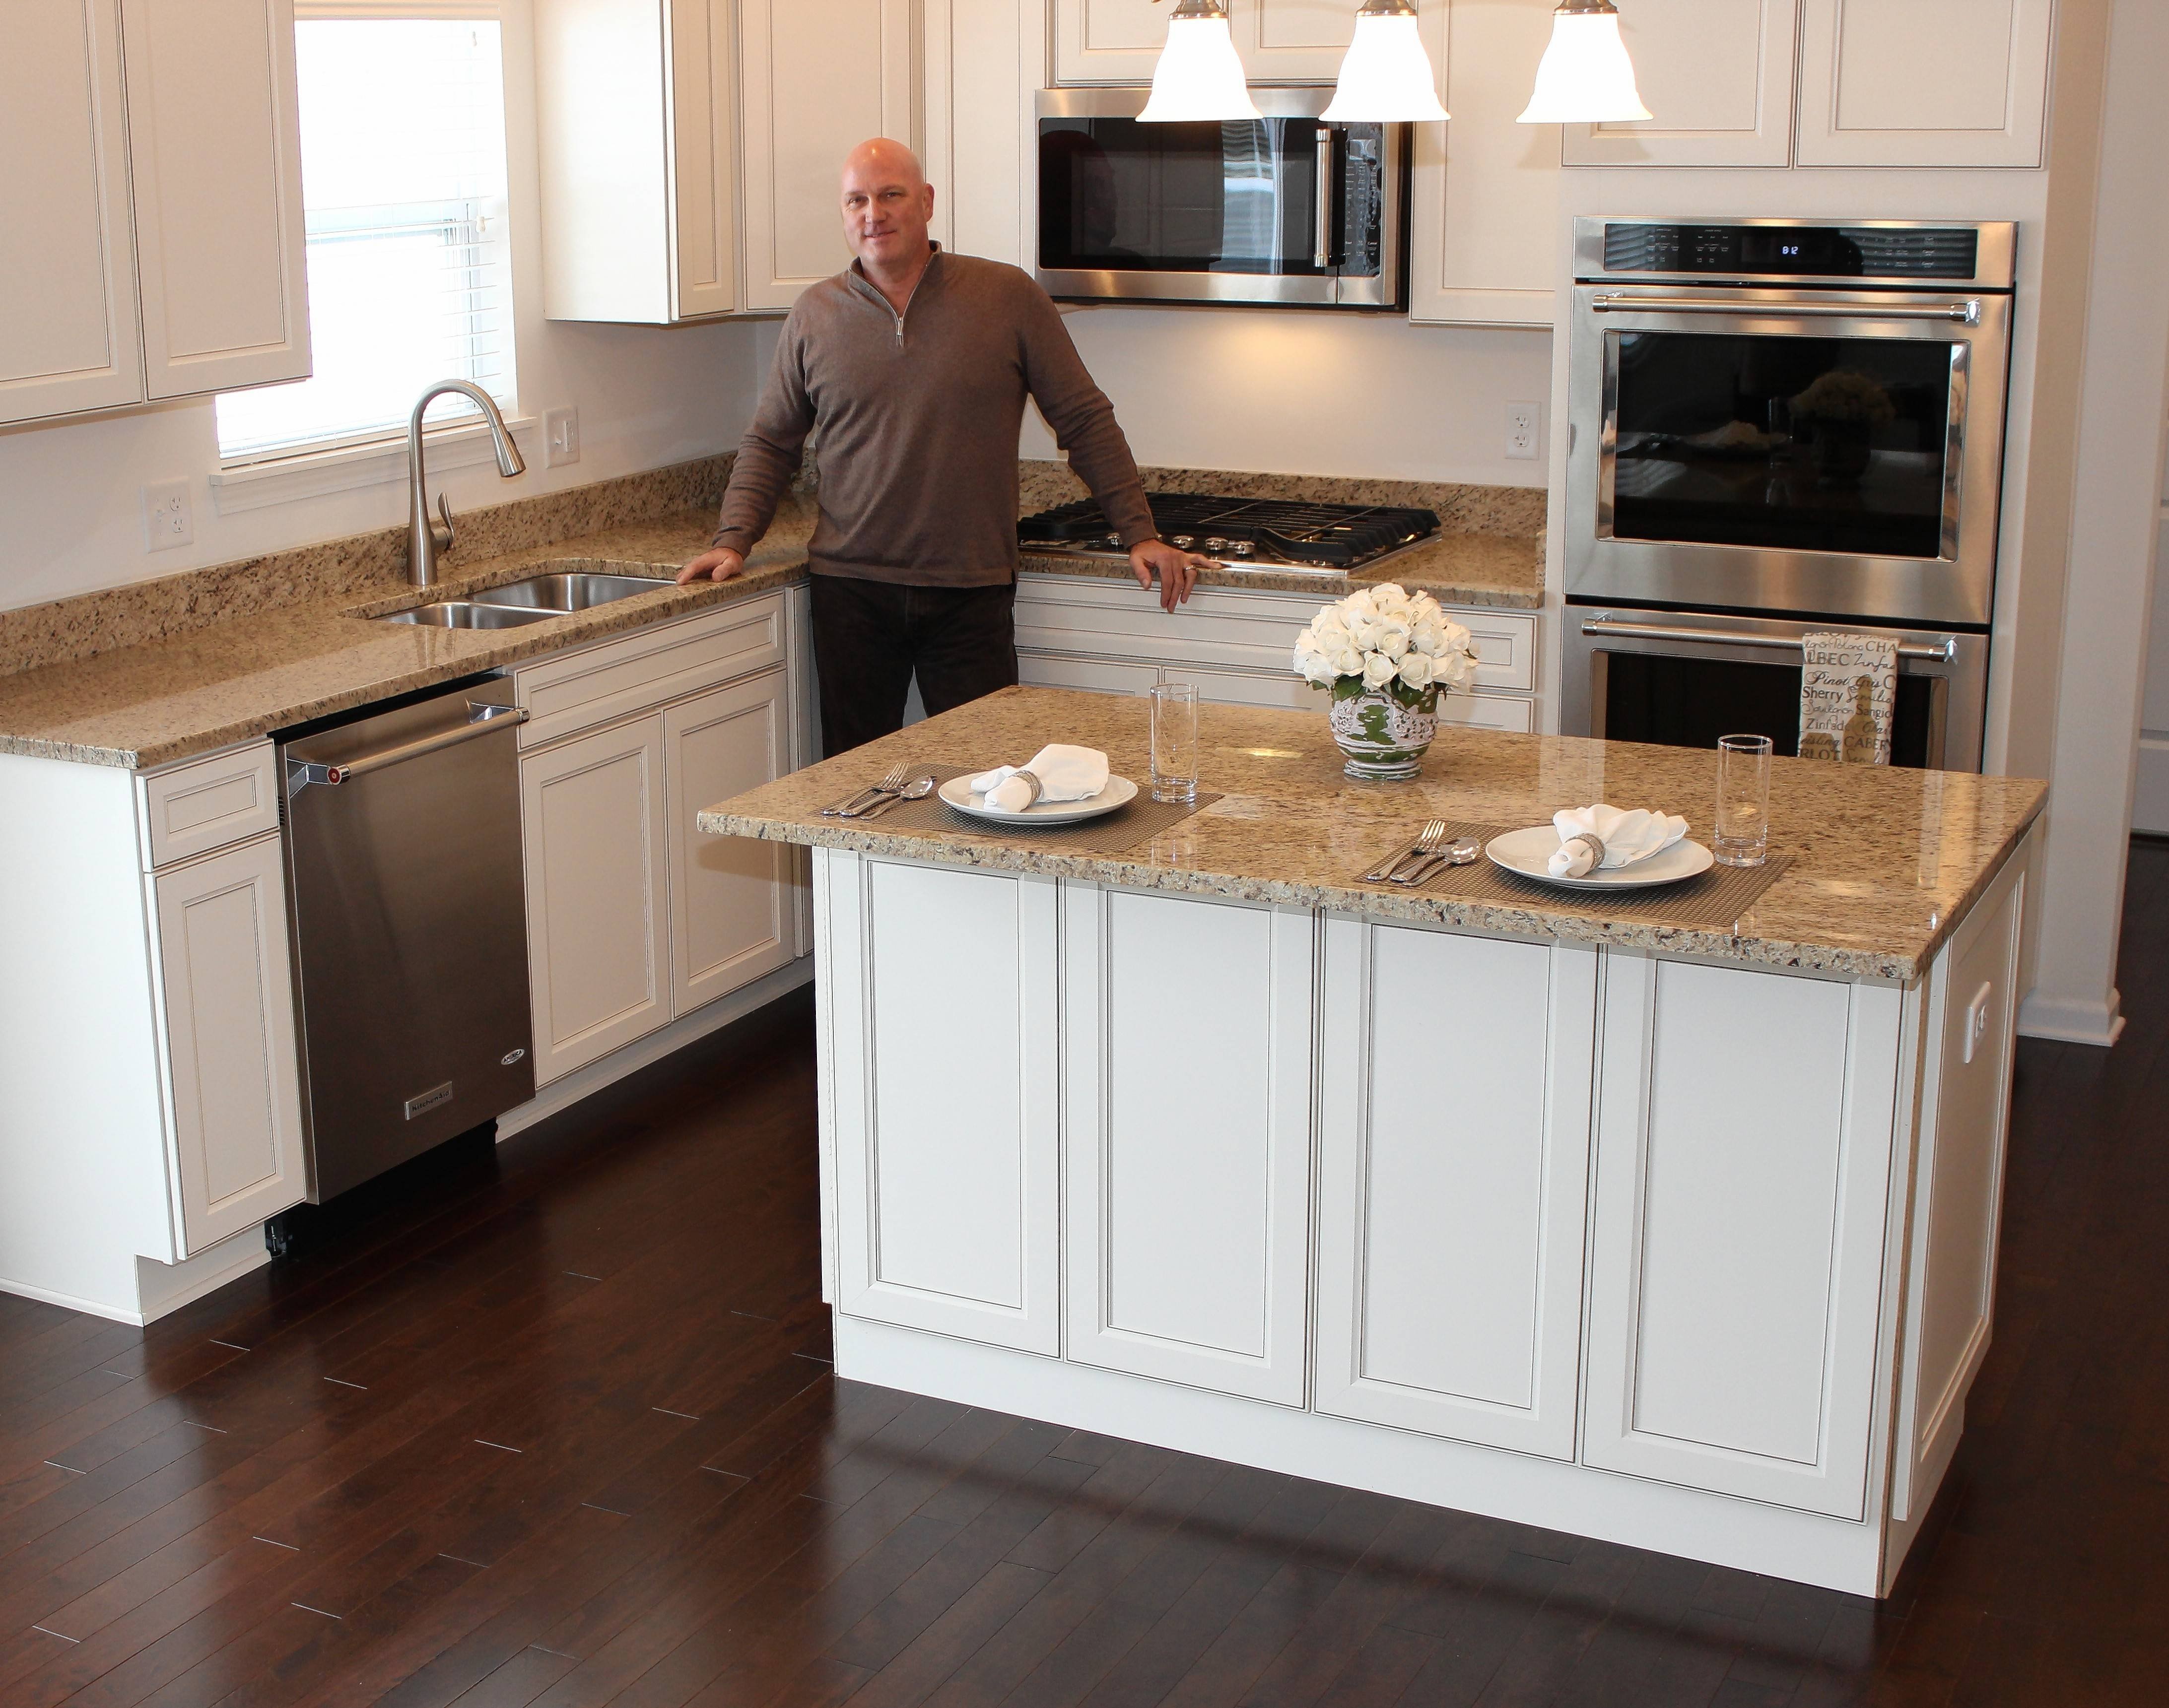 As the massive Mill Creek community in Geneva nears completion, Craig Shodeen, president of Shodeen Residential, talks about the company's future plans.